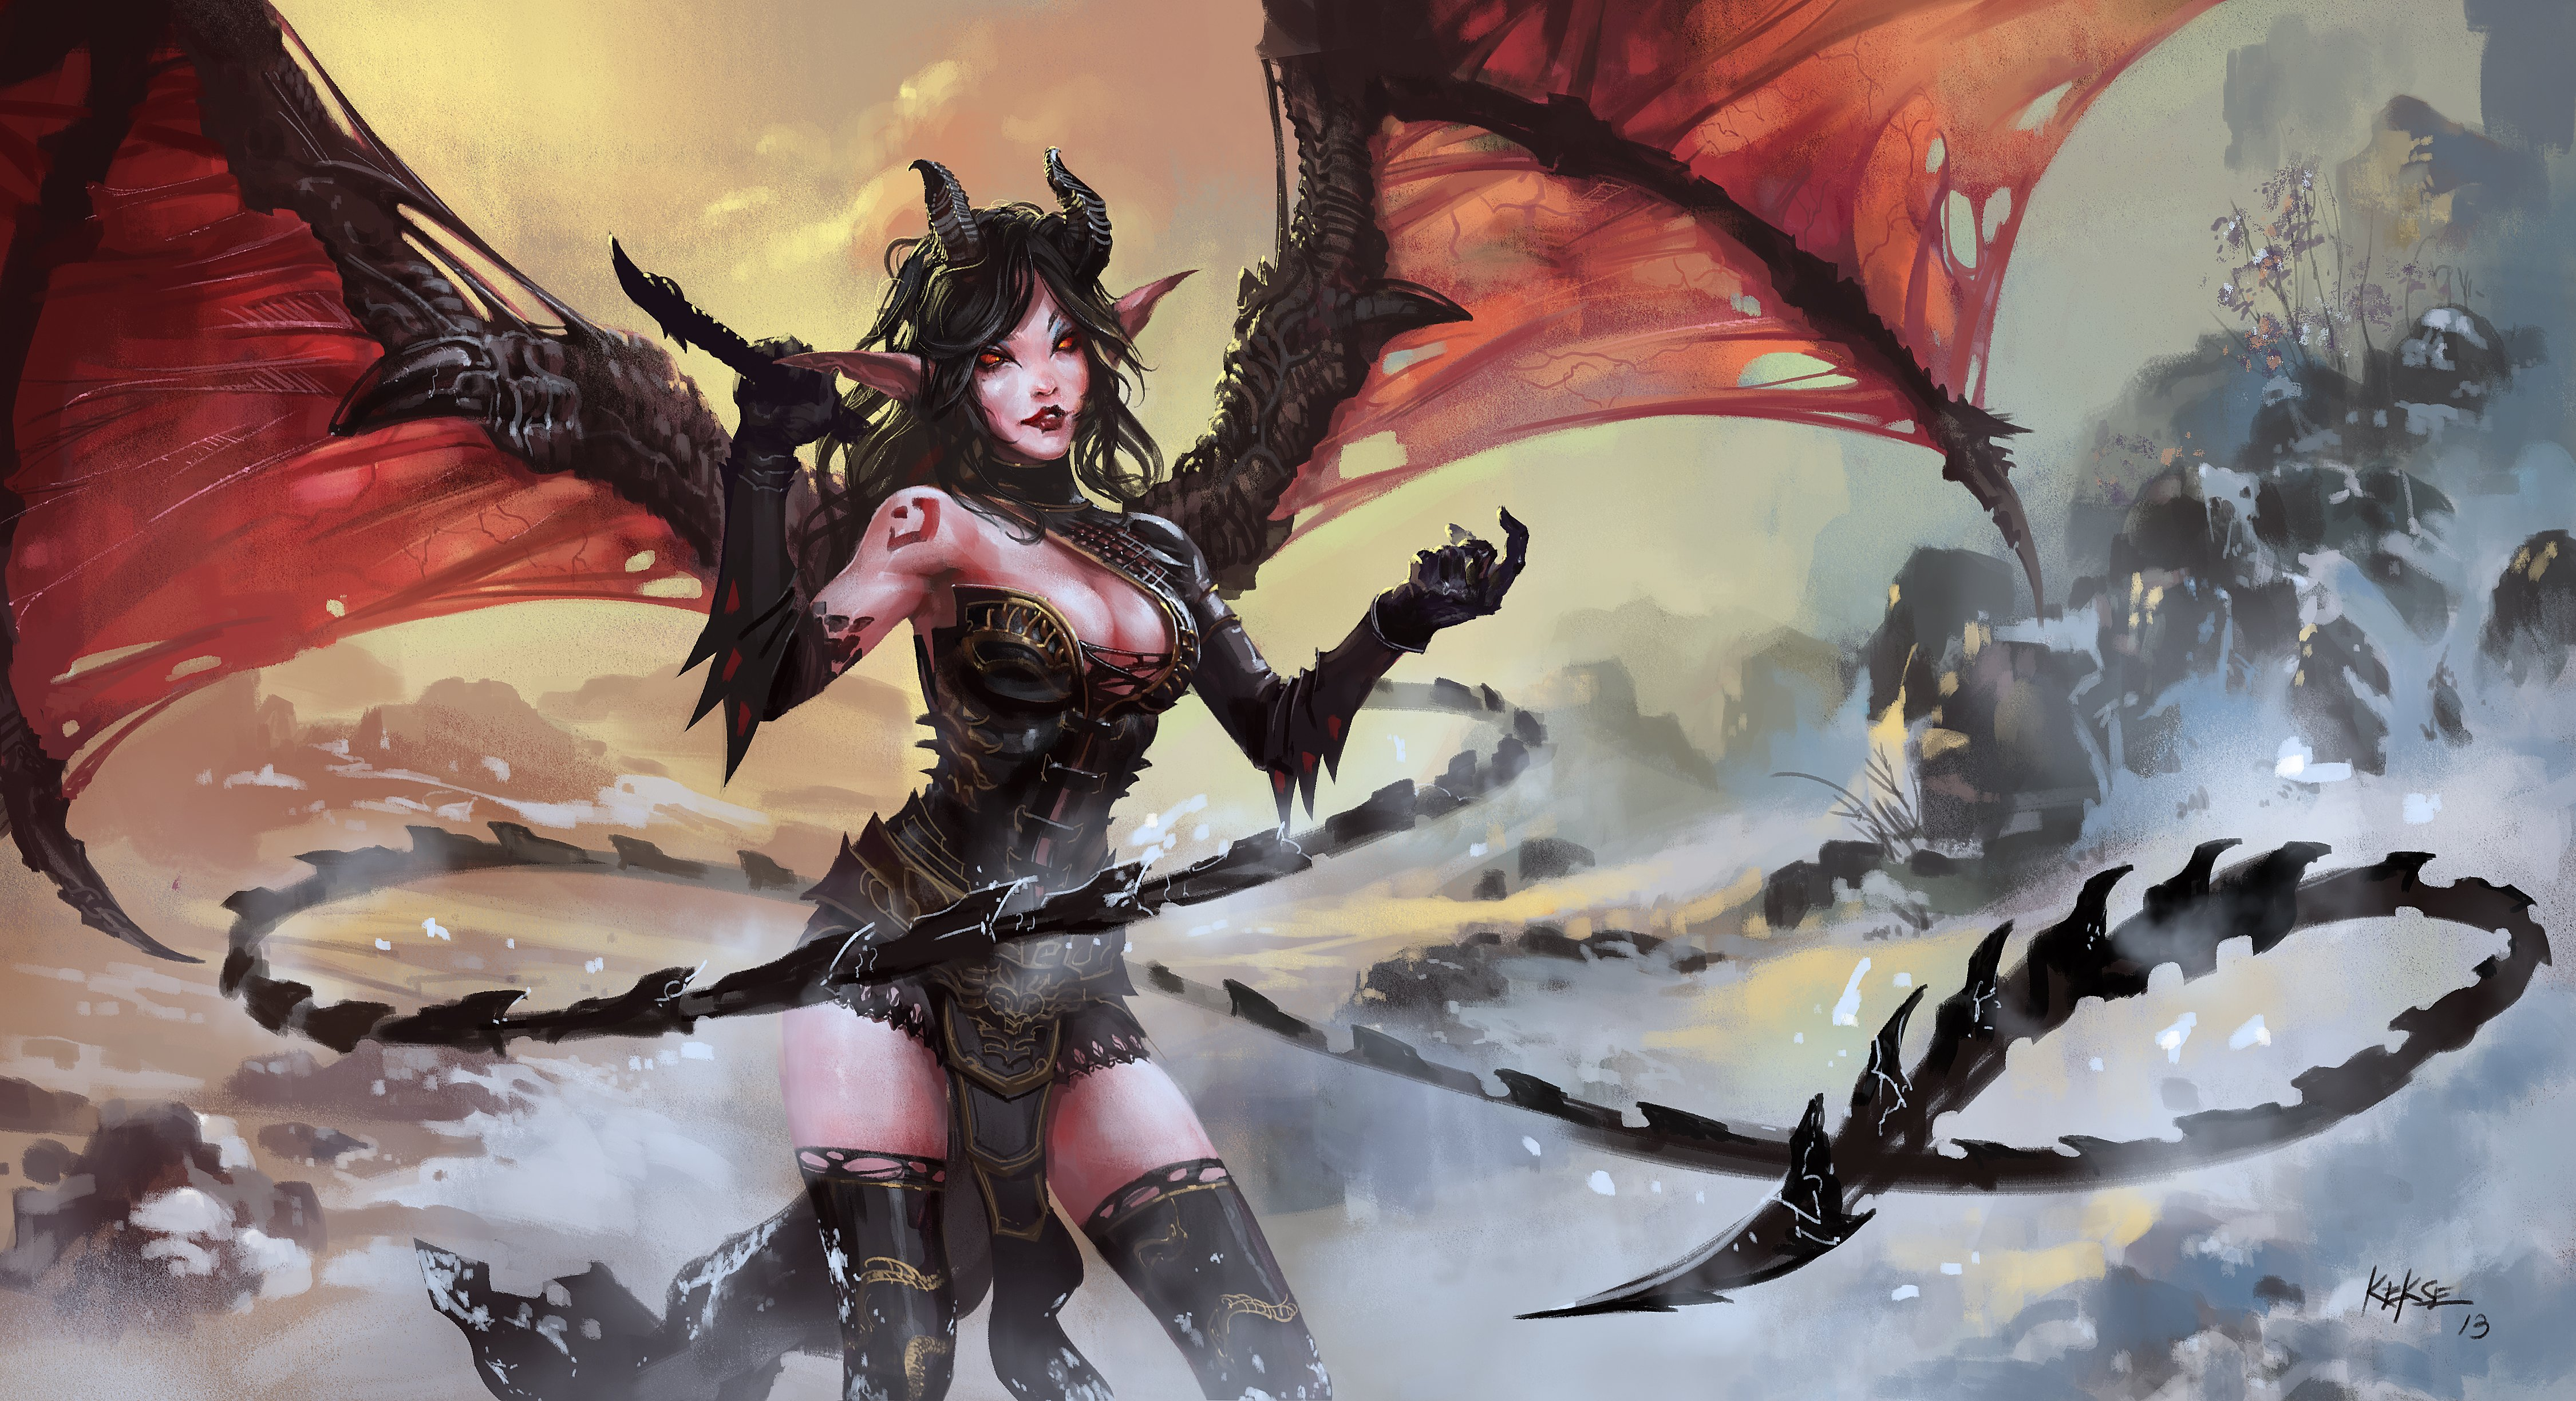 Succubus Computer Wallpapers Desktop Backgrounds 4500x2447 ID 4500x2447